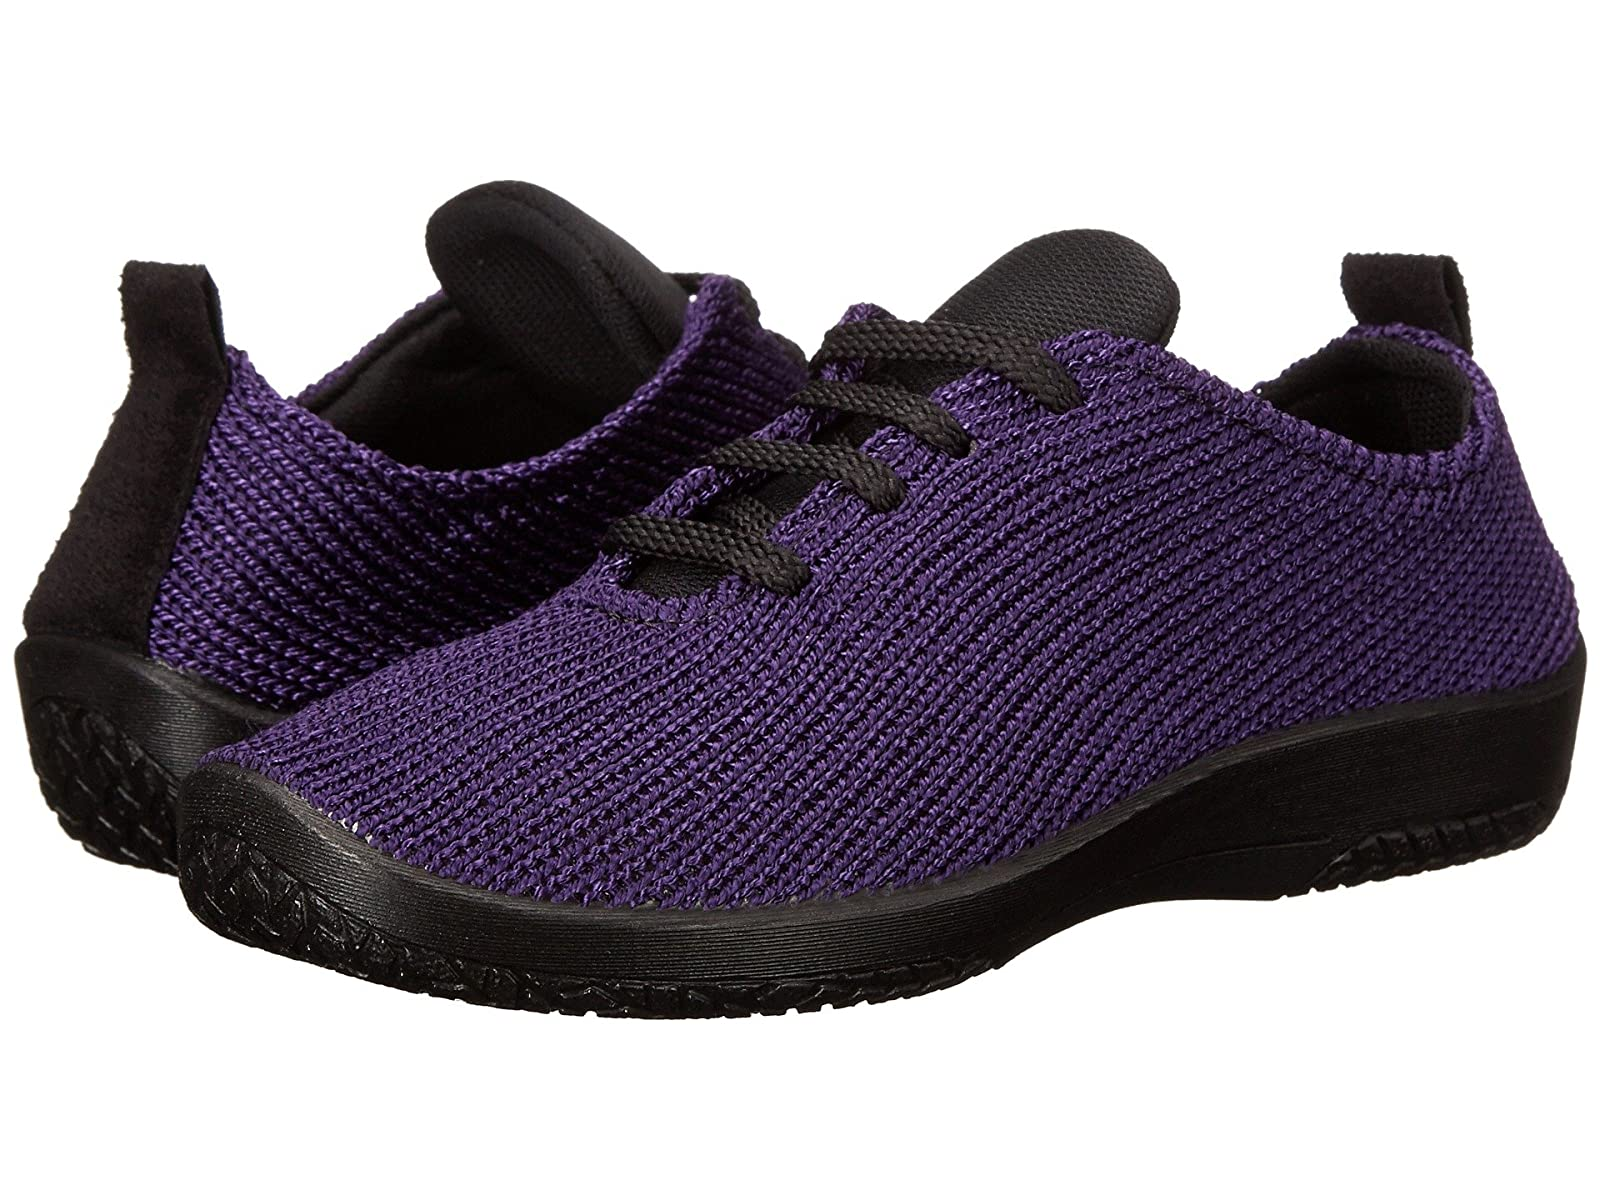 Arcopedico LSAtmospheric grades have affordable shoes